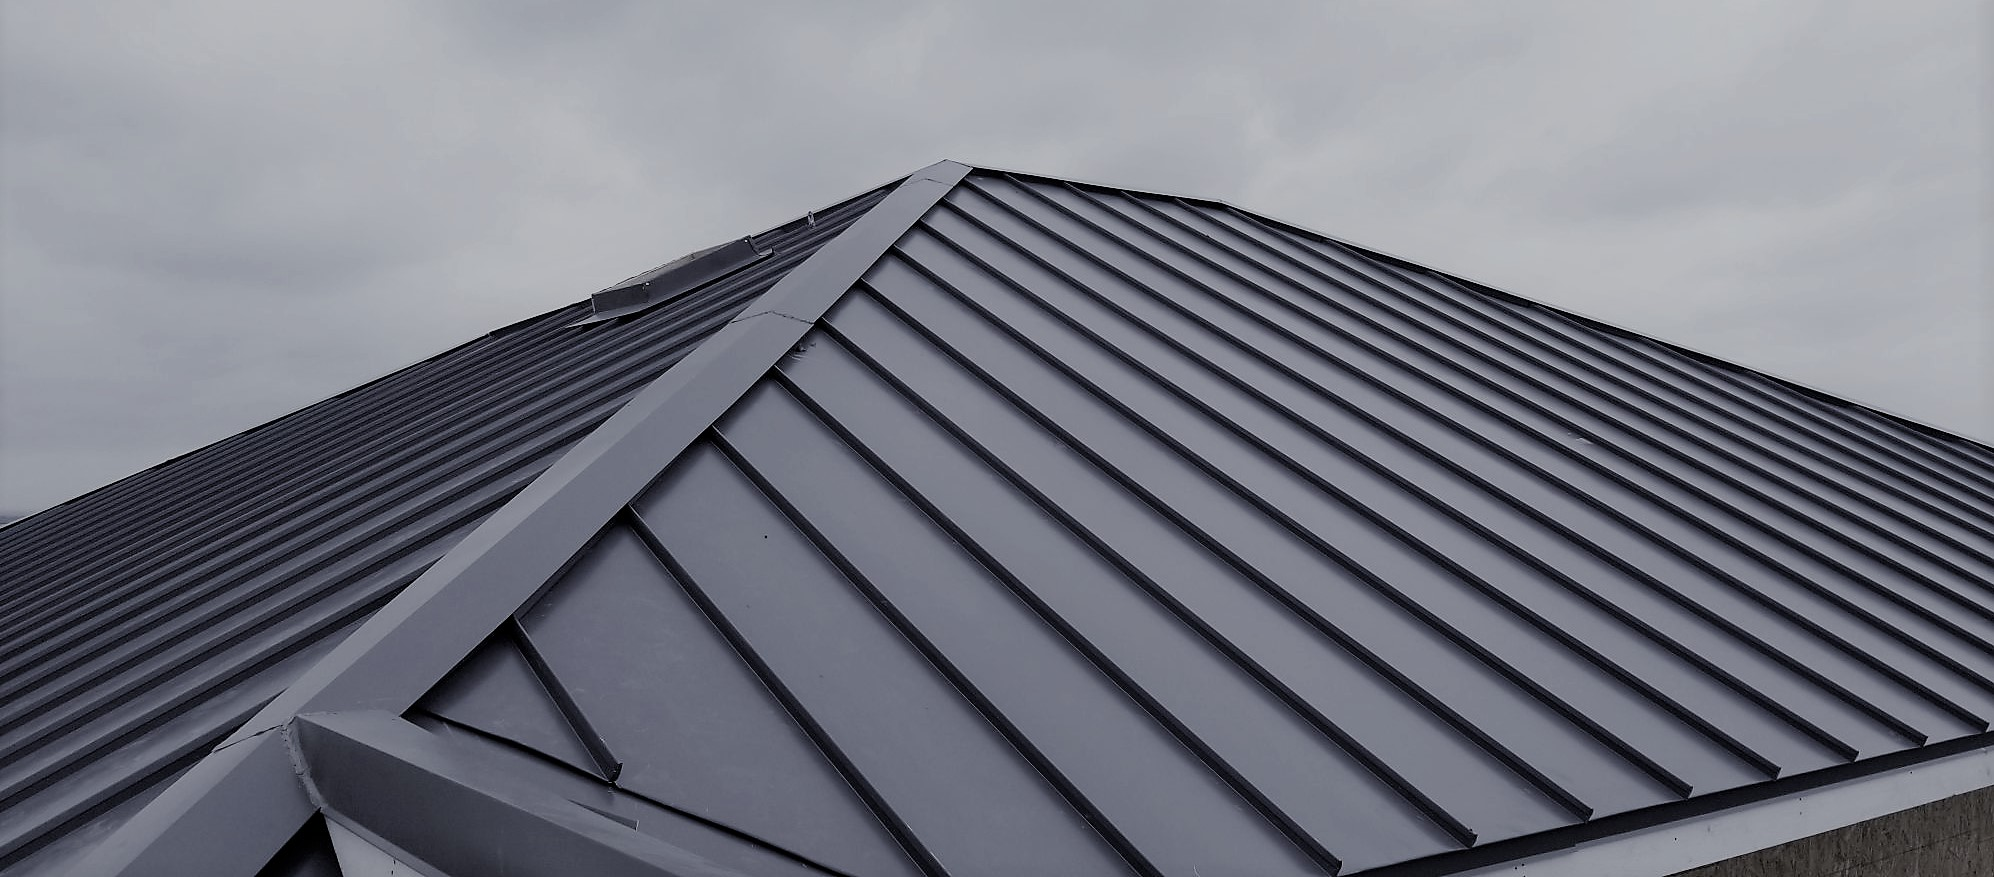 Commercial Metal Roof Repair and Maintenance